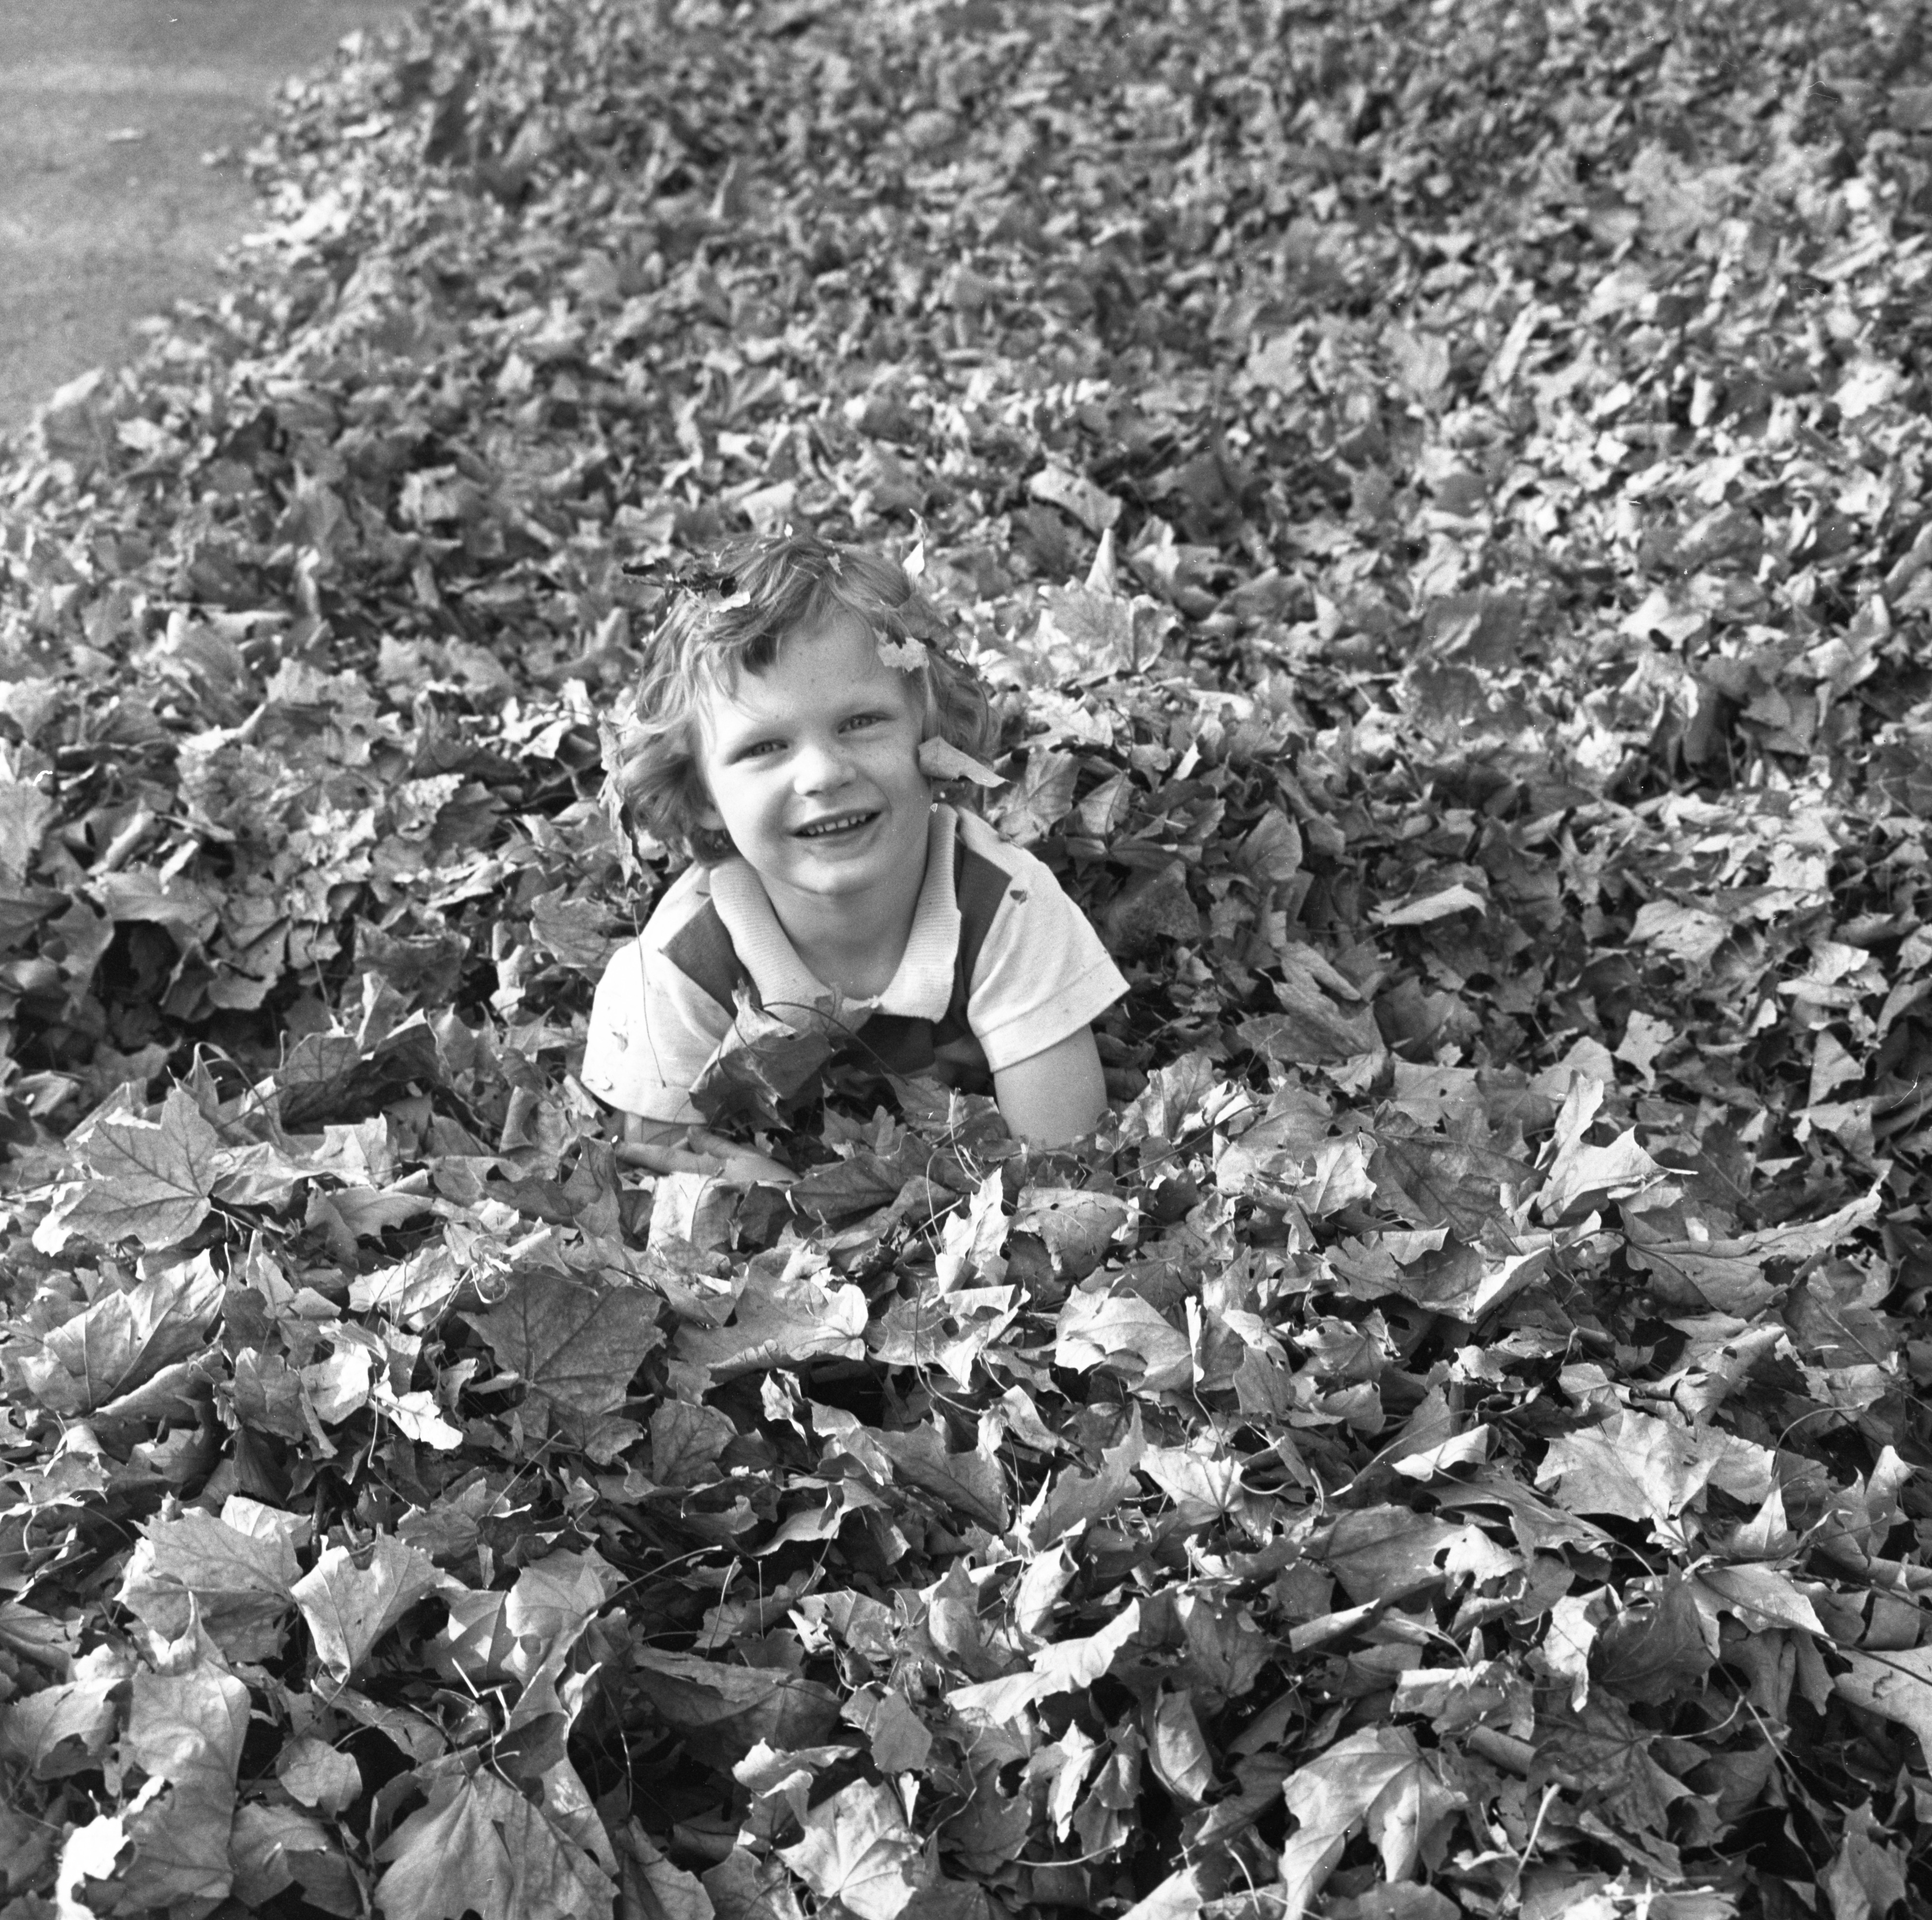 Marjorie Price Plays In A Pile Of Leaves, October 1963 image